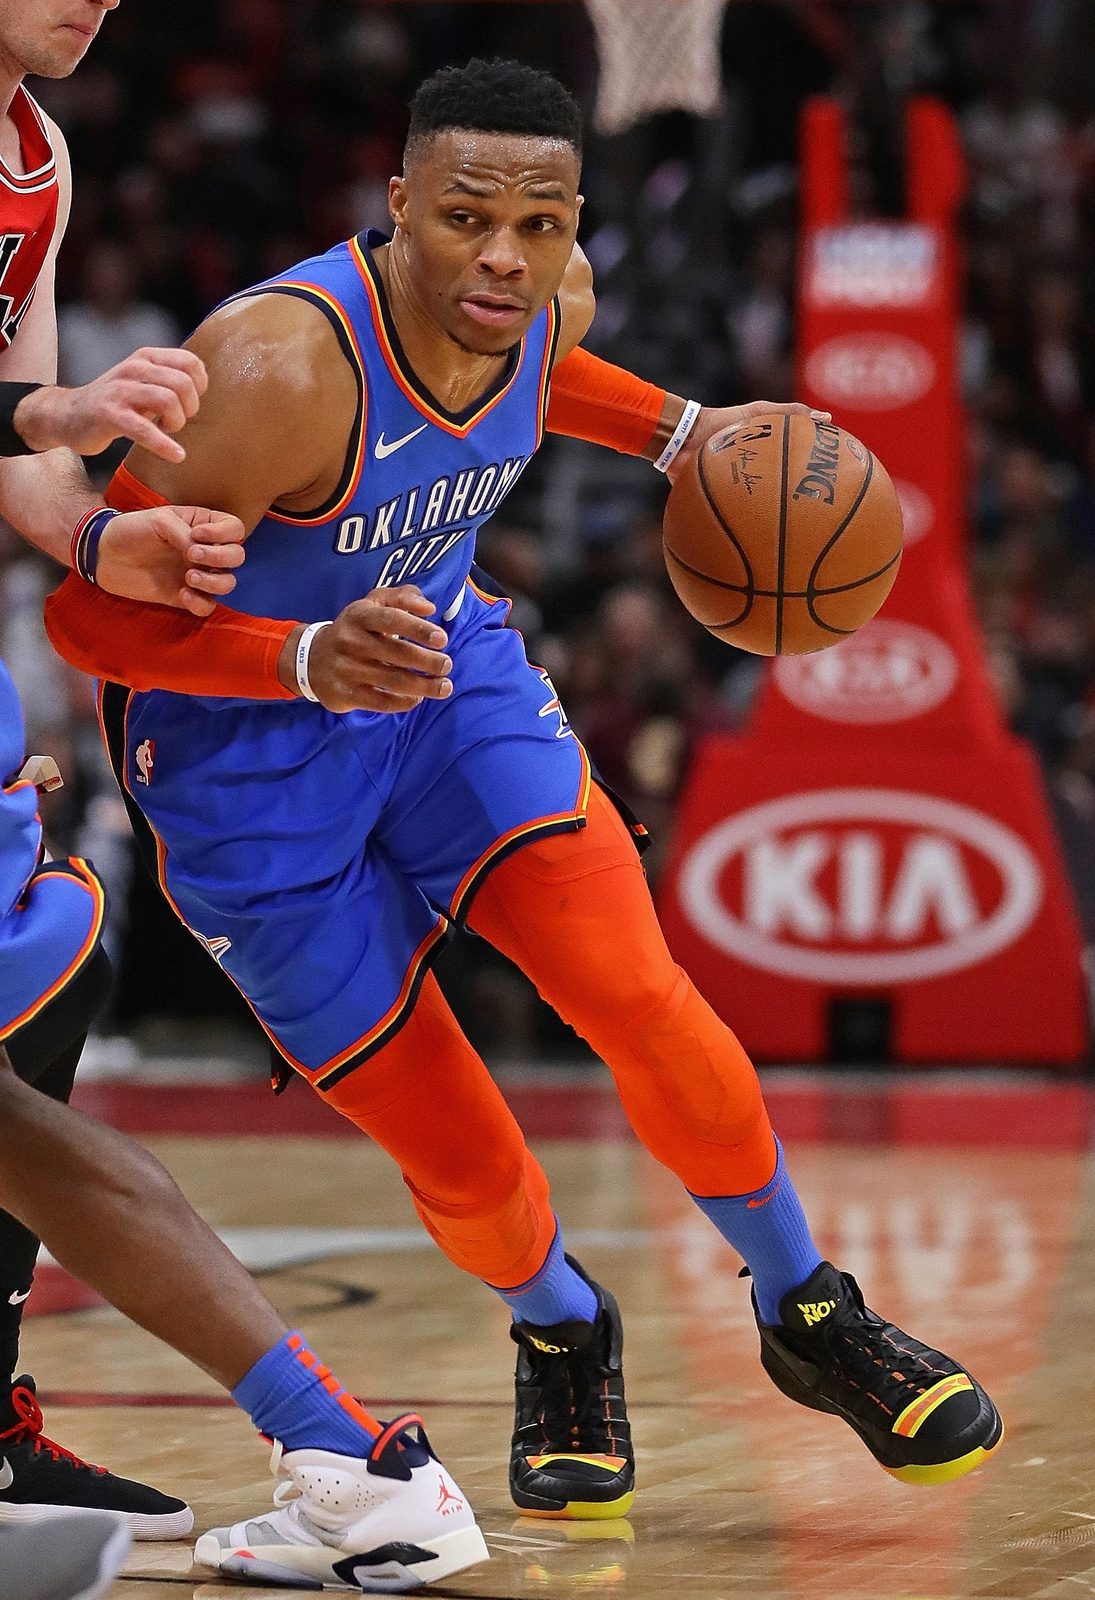 Russell Westbrook #0 of the Oklahoma City Thunder moves against the Chicago Bulls at the United Center on December 07, 2018 in Chicago, Illinois. The Bulls defeated the Thunder 114-112.